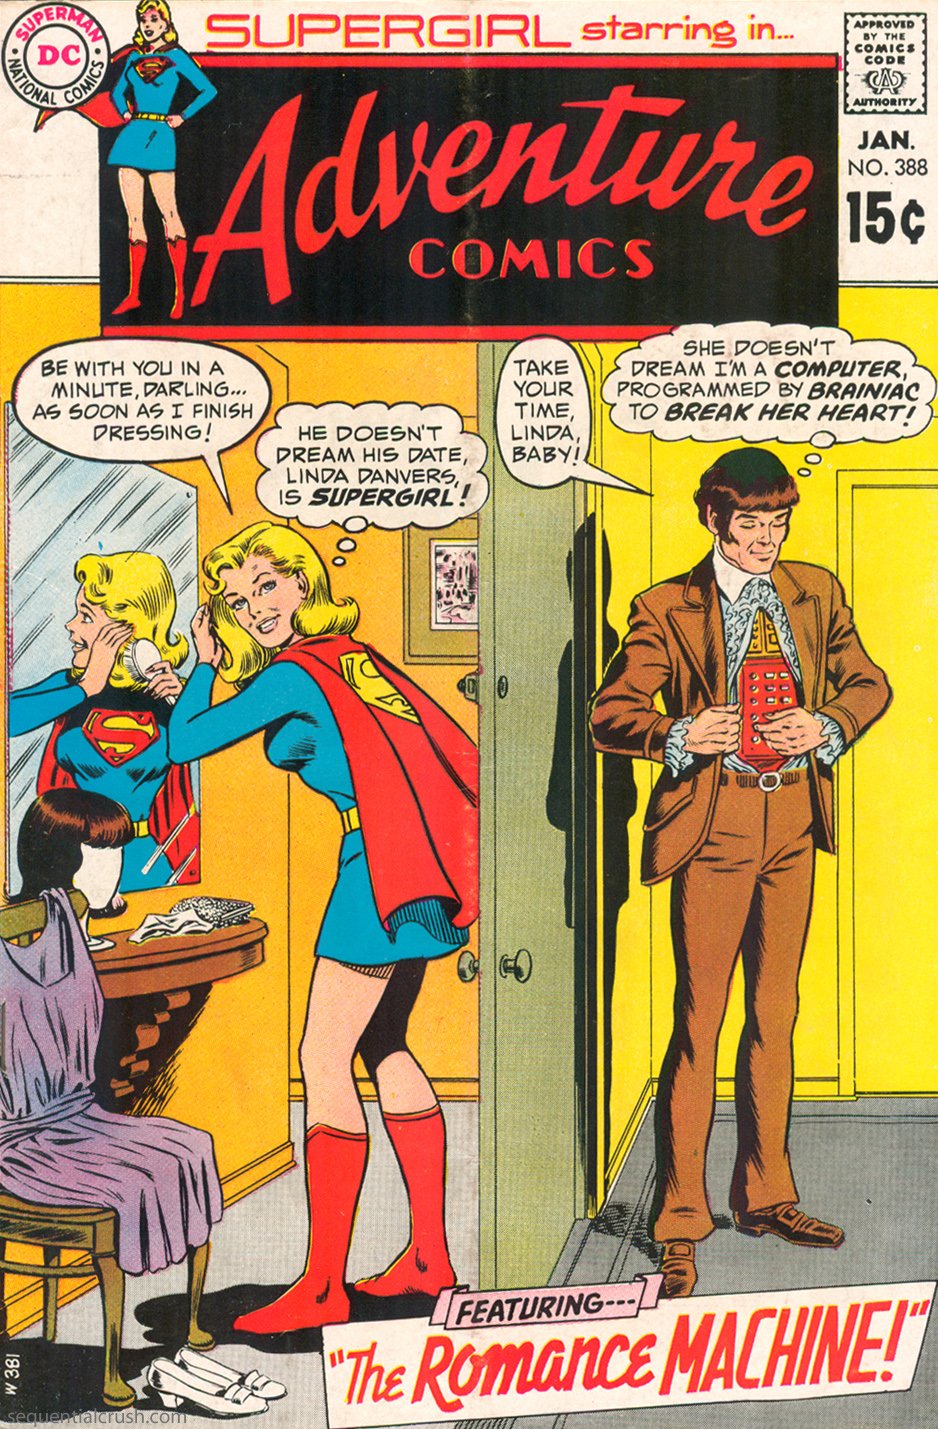 Adventure Comics  #388 (January 1970) Pencils: Curt Swan, Inks: Murphy Anderson